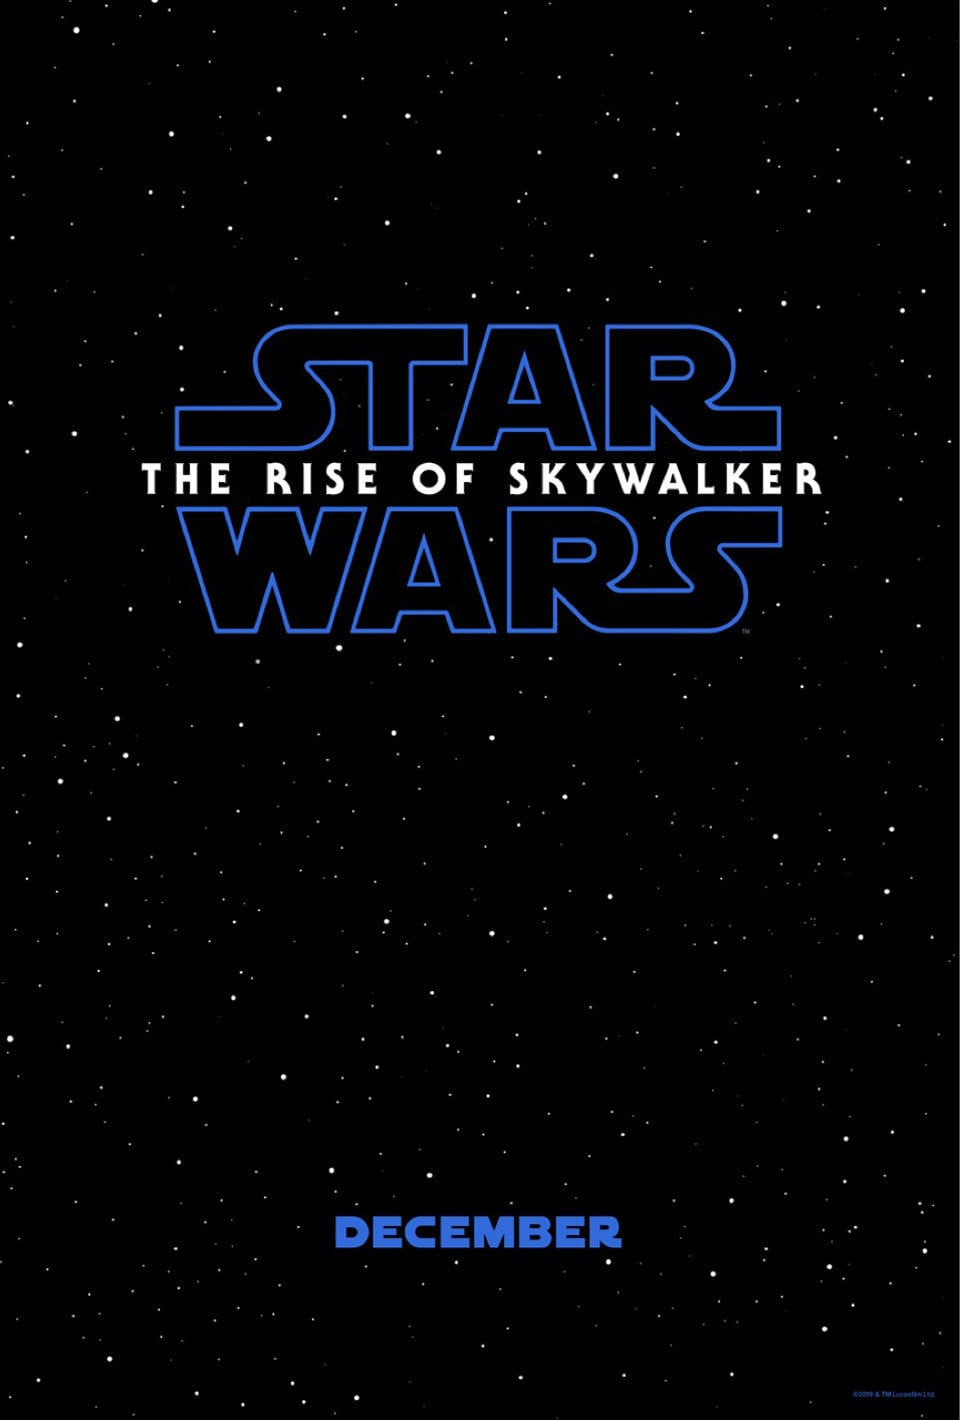 Star Wars: A Ascensão de Skywalker